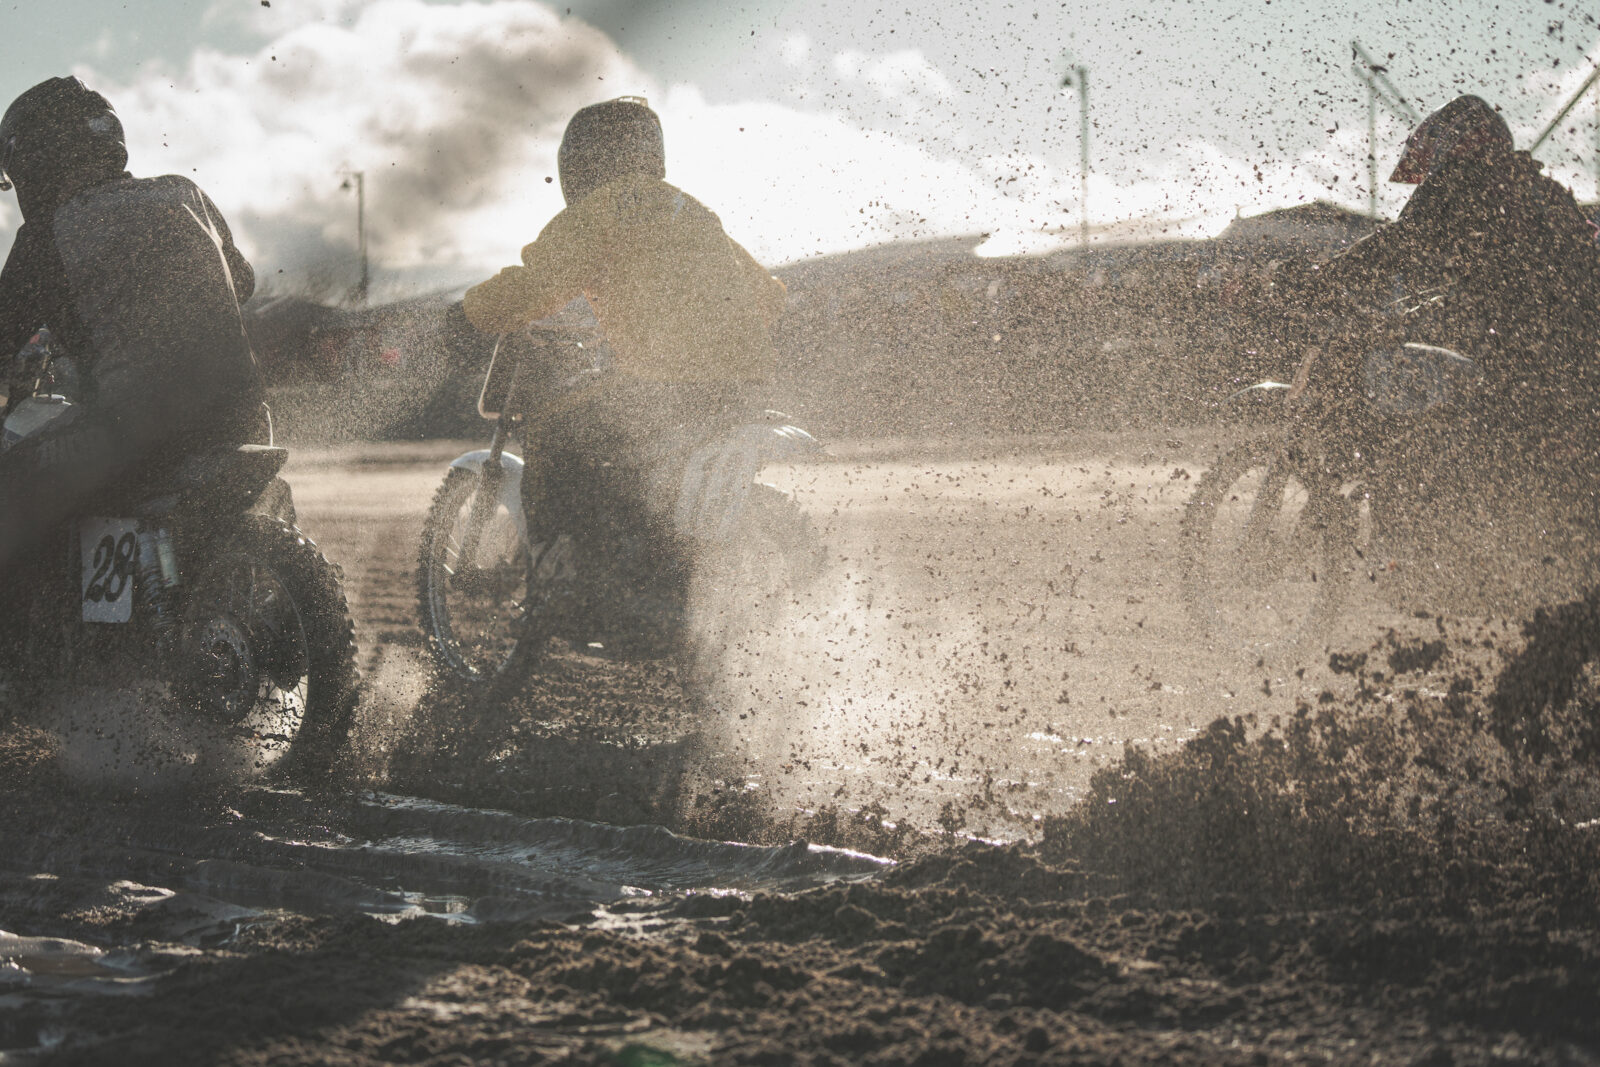 Mablethorpe Motorcycle Sand Racing 18